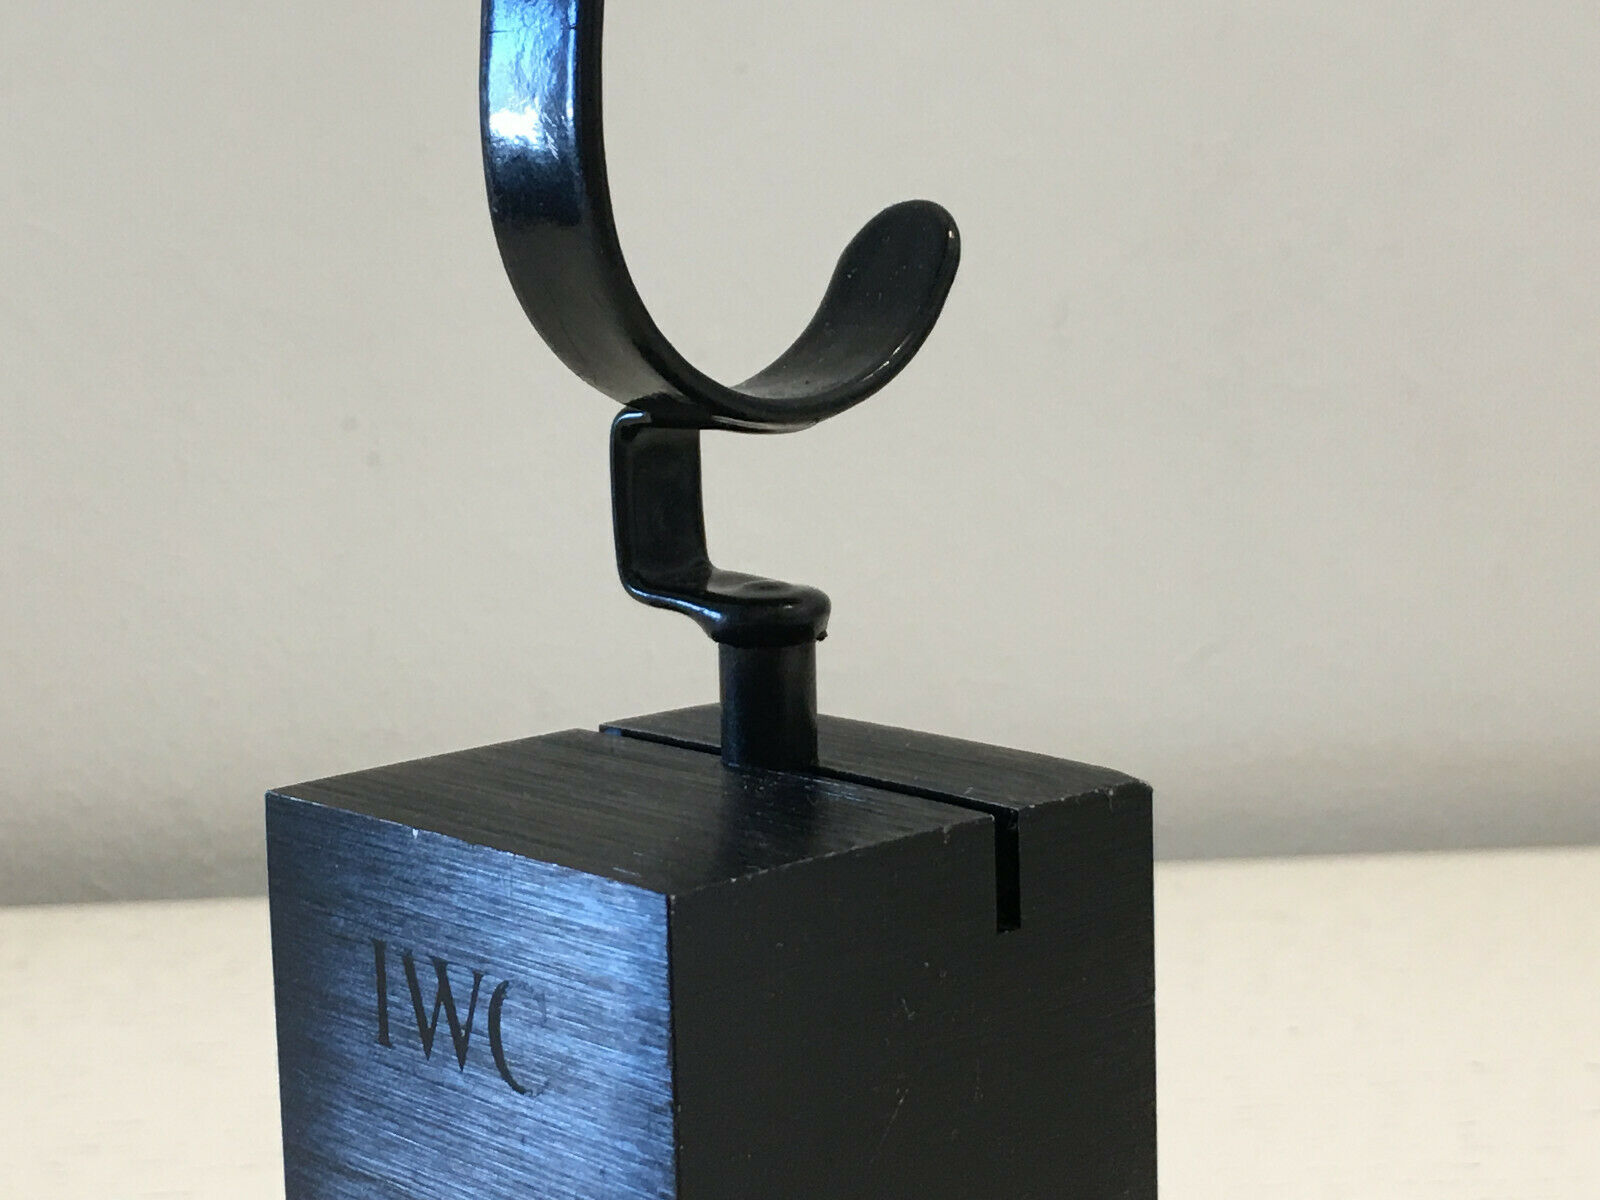 Used - Watch Support IWC Soporte reloj reloj reloj - nero metal - 4 5 x 4 5 x 7 cm - Usado 8eb02e